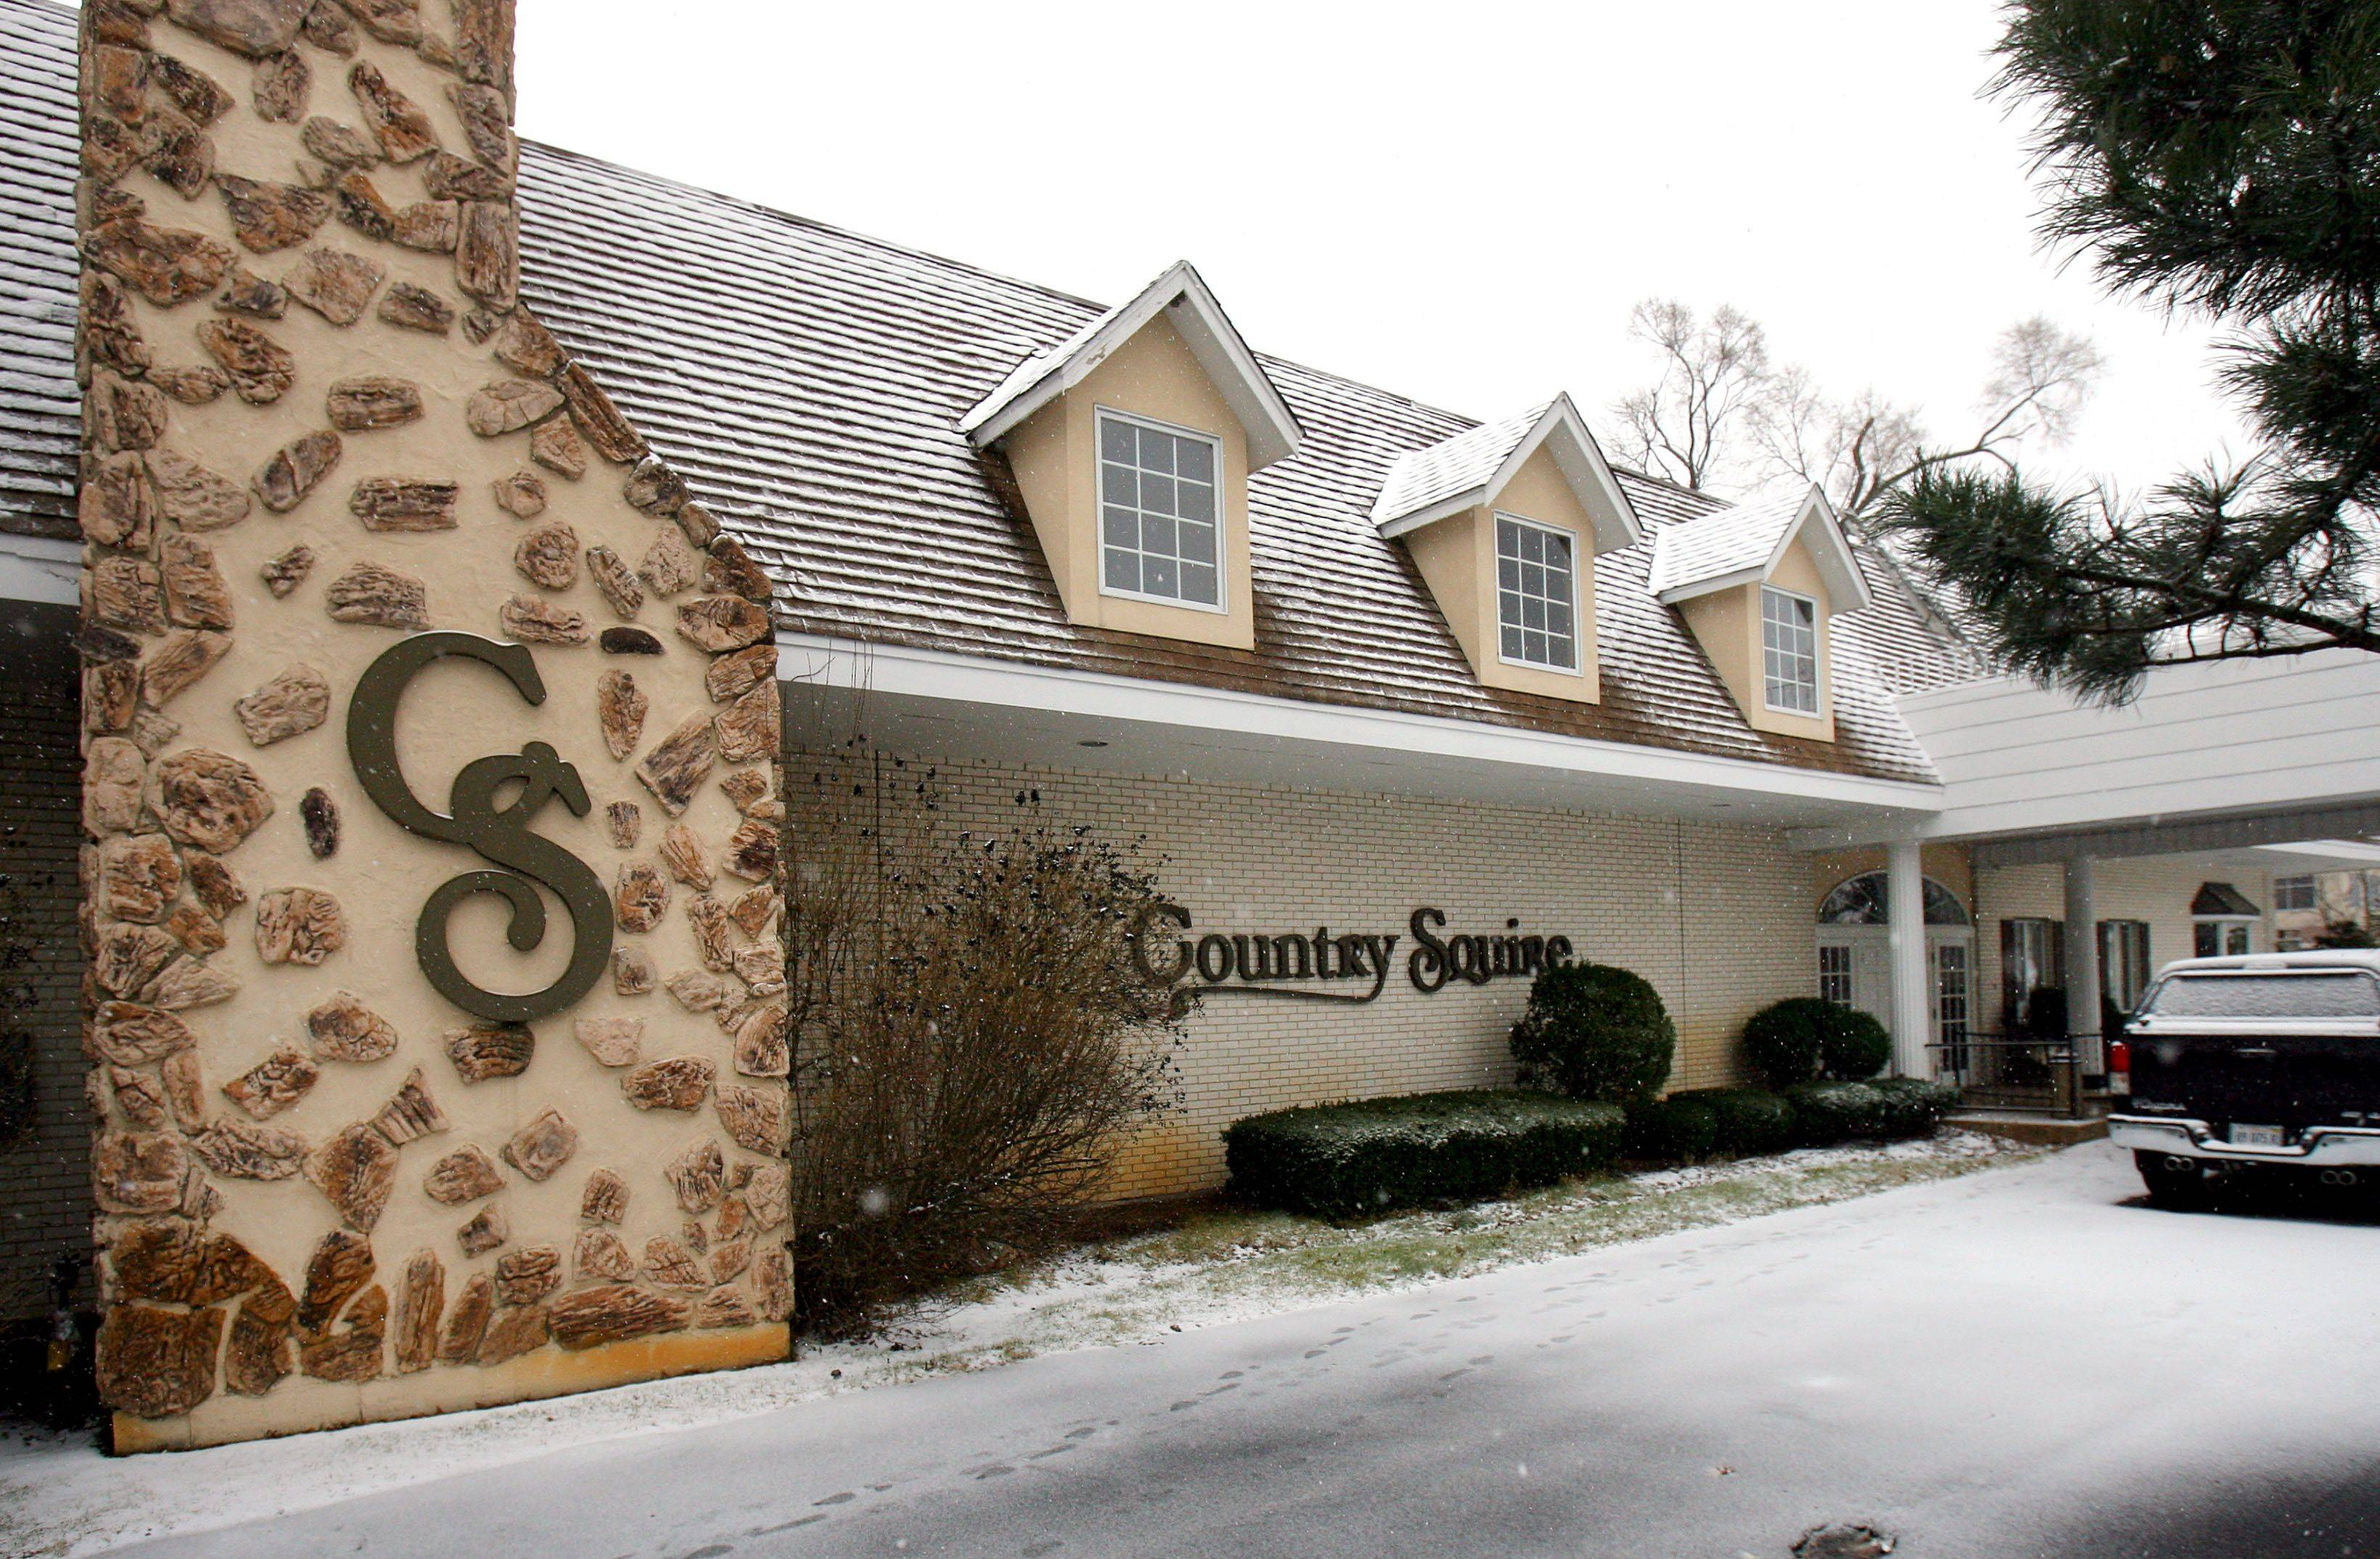 Country Squire in Grayslake attracted everyday folks for special occasions, celebrities and politicians over the years. Grayslake village officials confirmed the restaurant's closure Thursday.